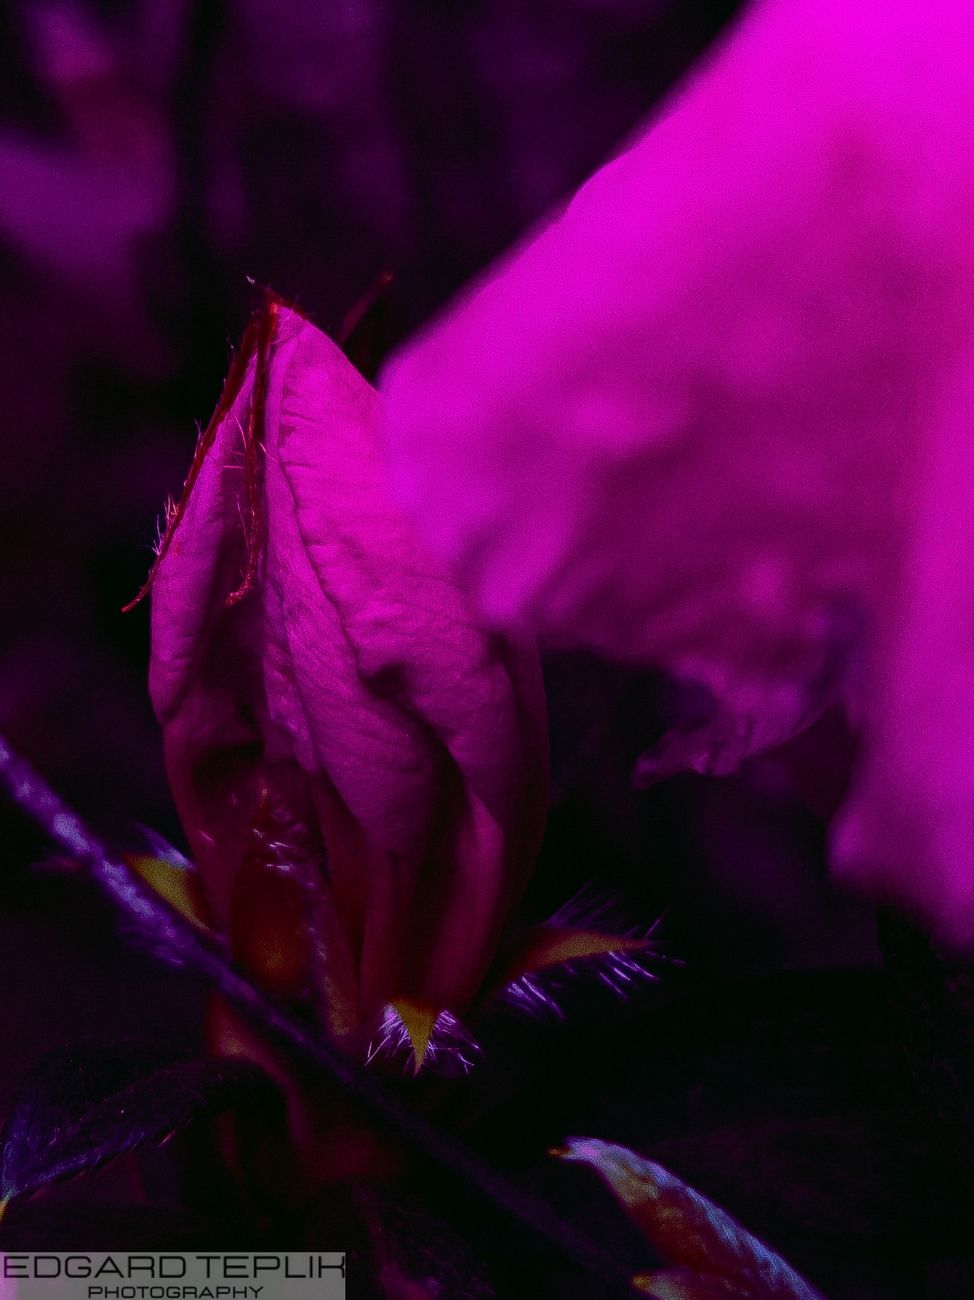 A beautiful lilac-colored bud with an open petal in the same shade. Dark background.